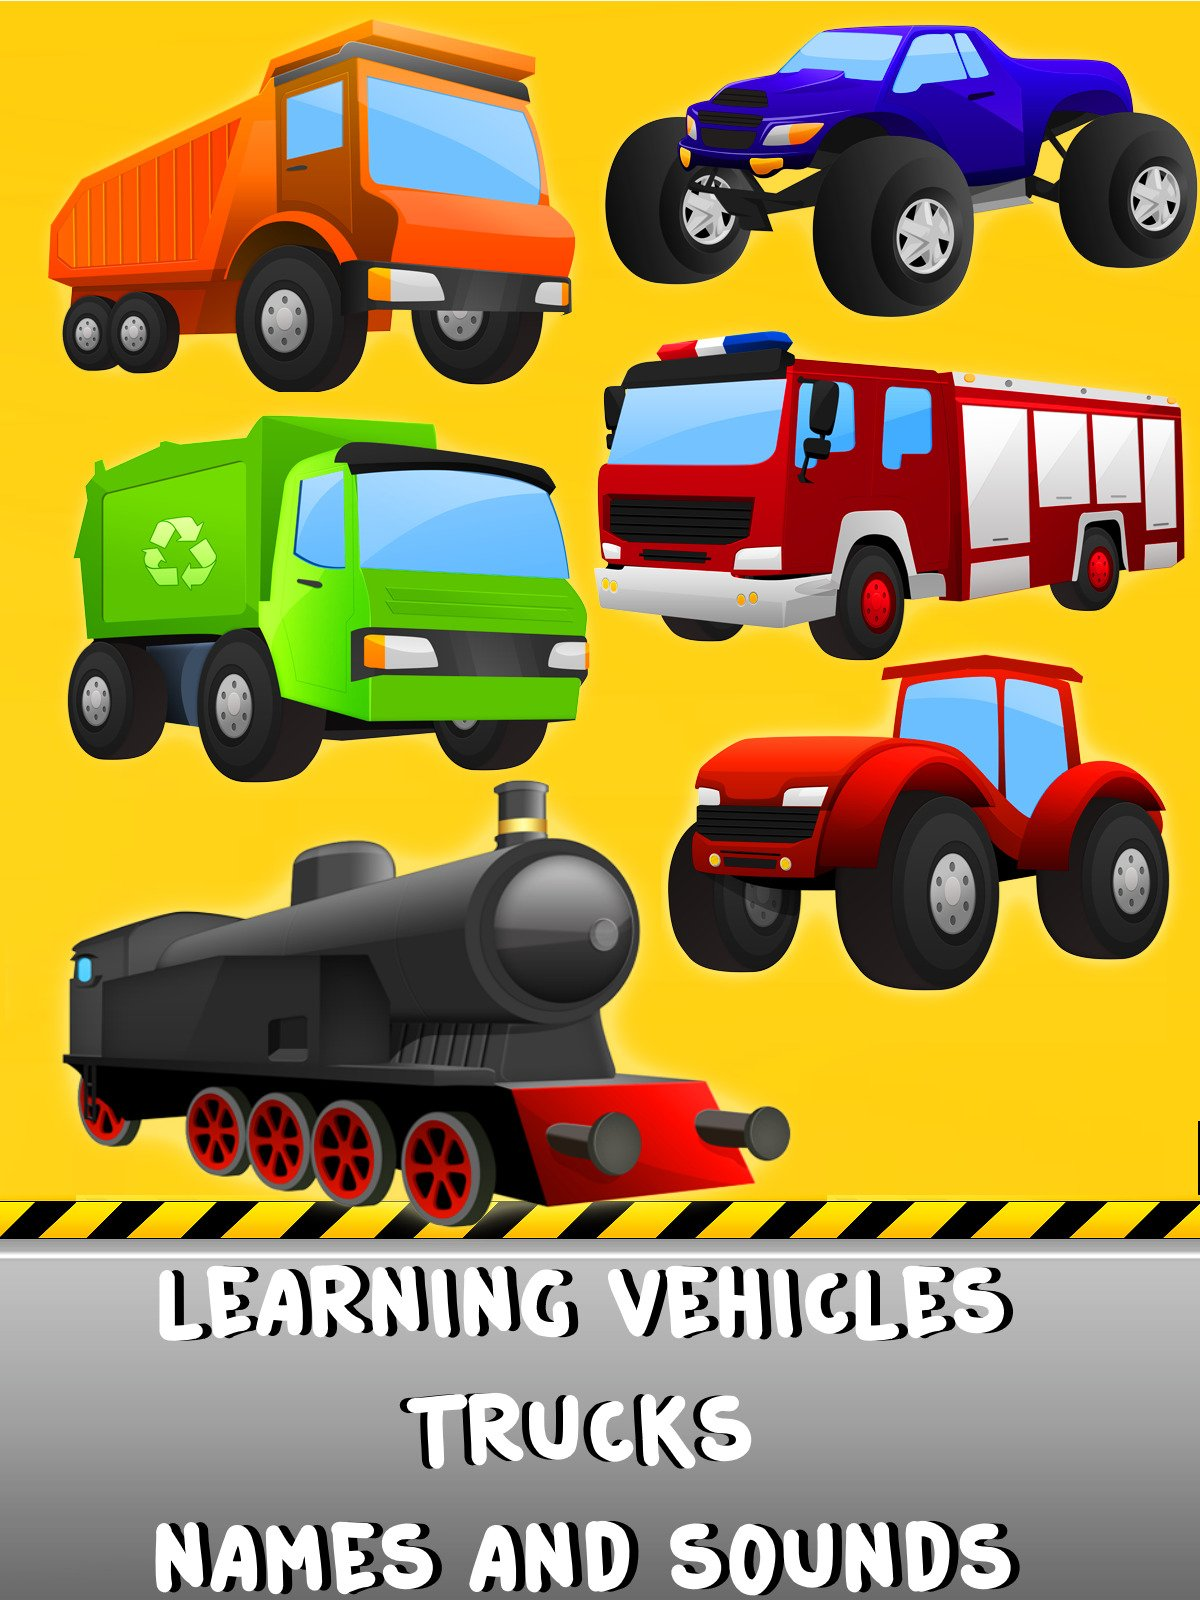 Learning Vehicles Trucks Names And Sounds